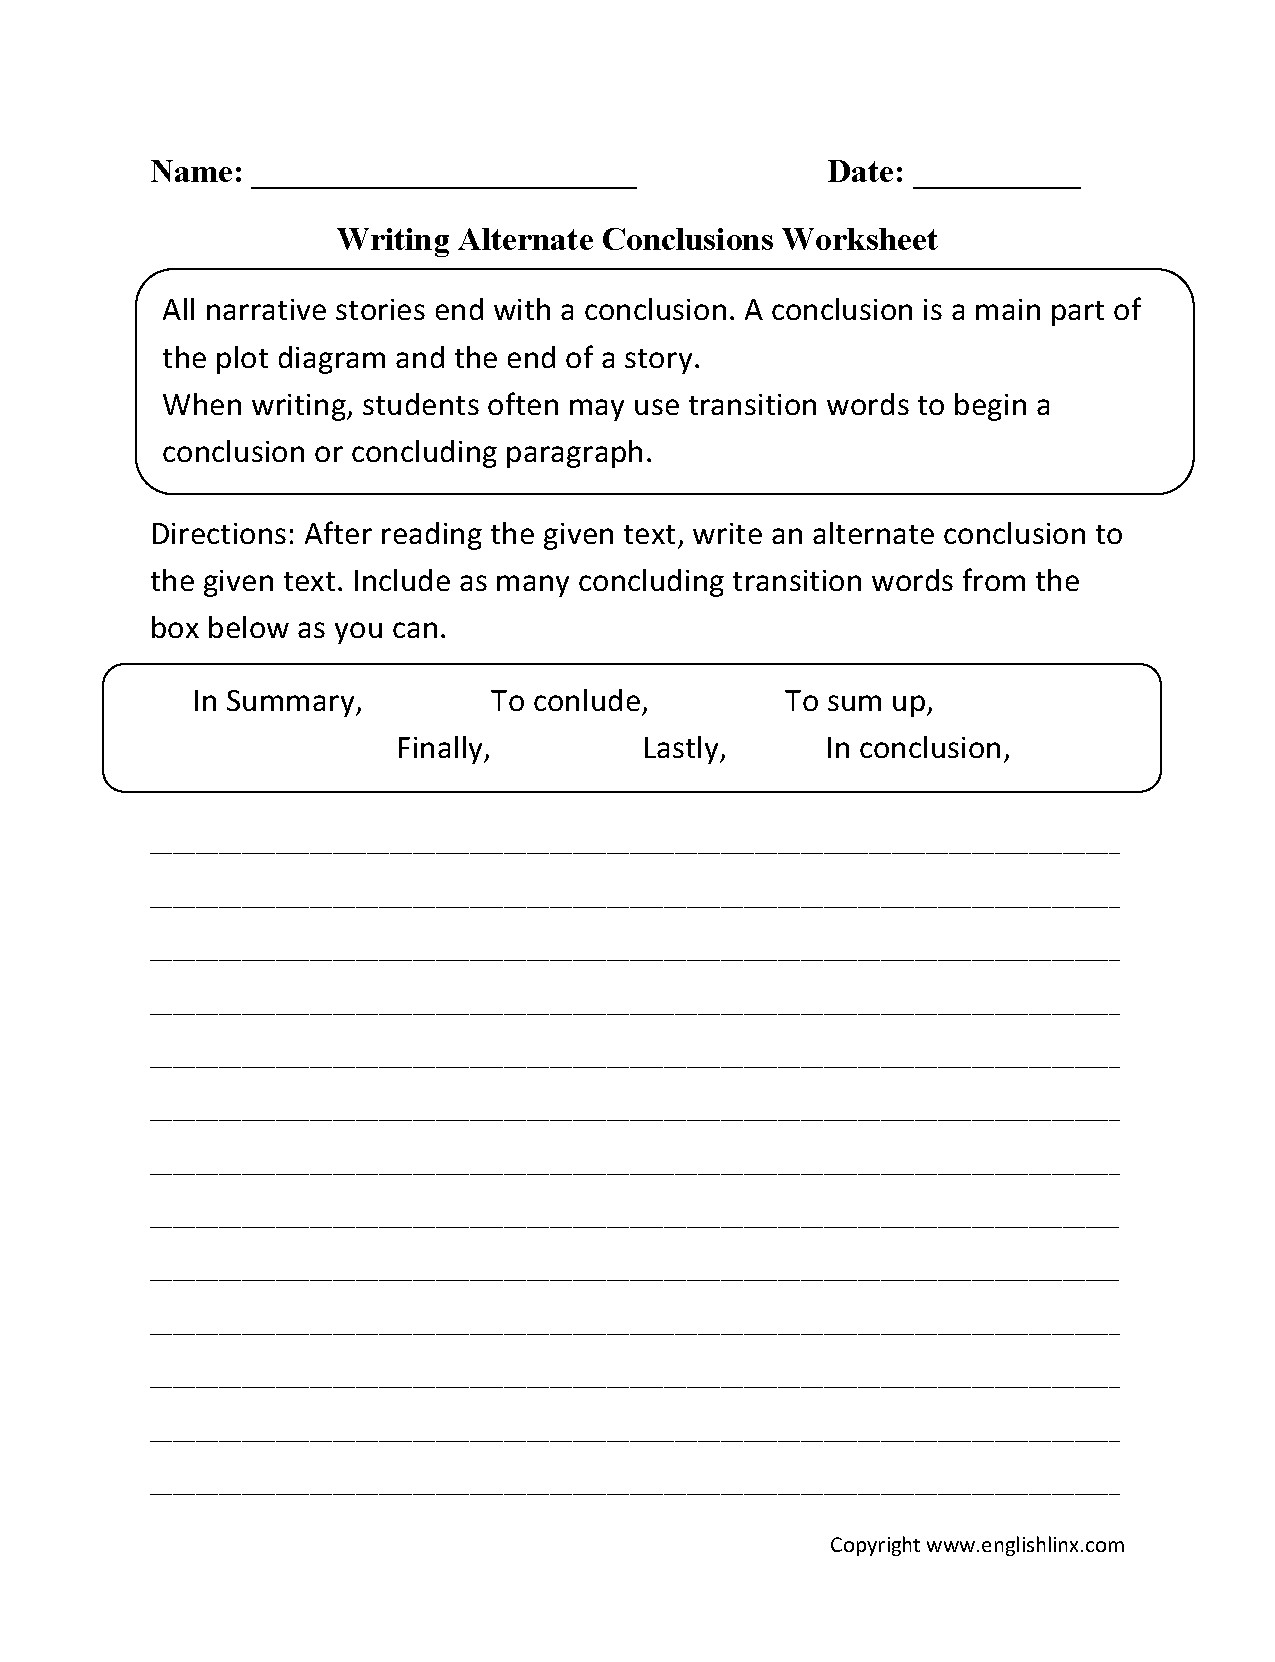 027 Englishlinx Writing Conclusions Worksheets Pertaining To Conclusion Paragraph Examples 5th Grade Research Impressive Example For Analysis Essay Paper History Full